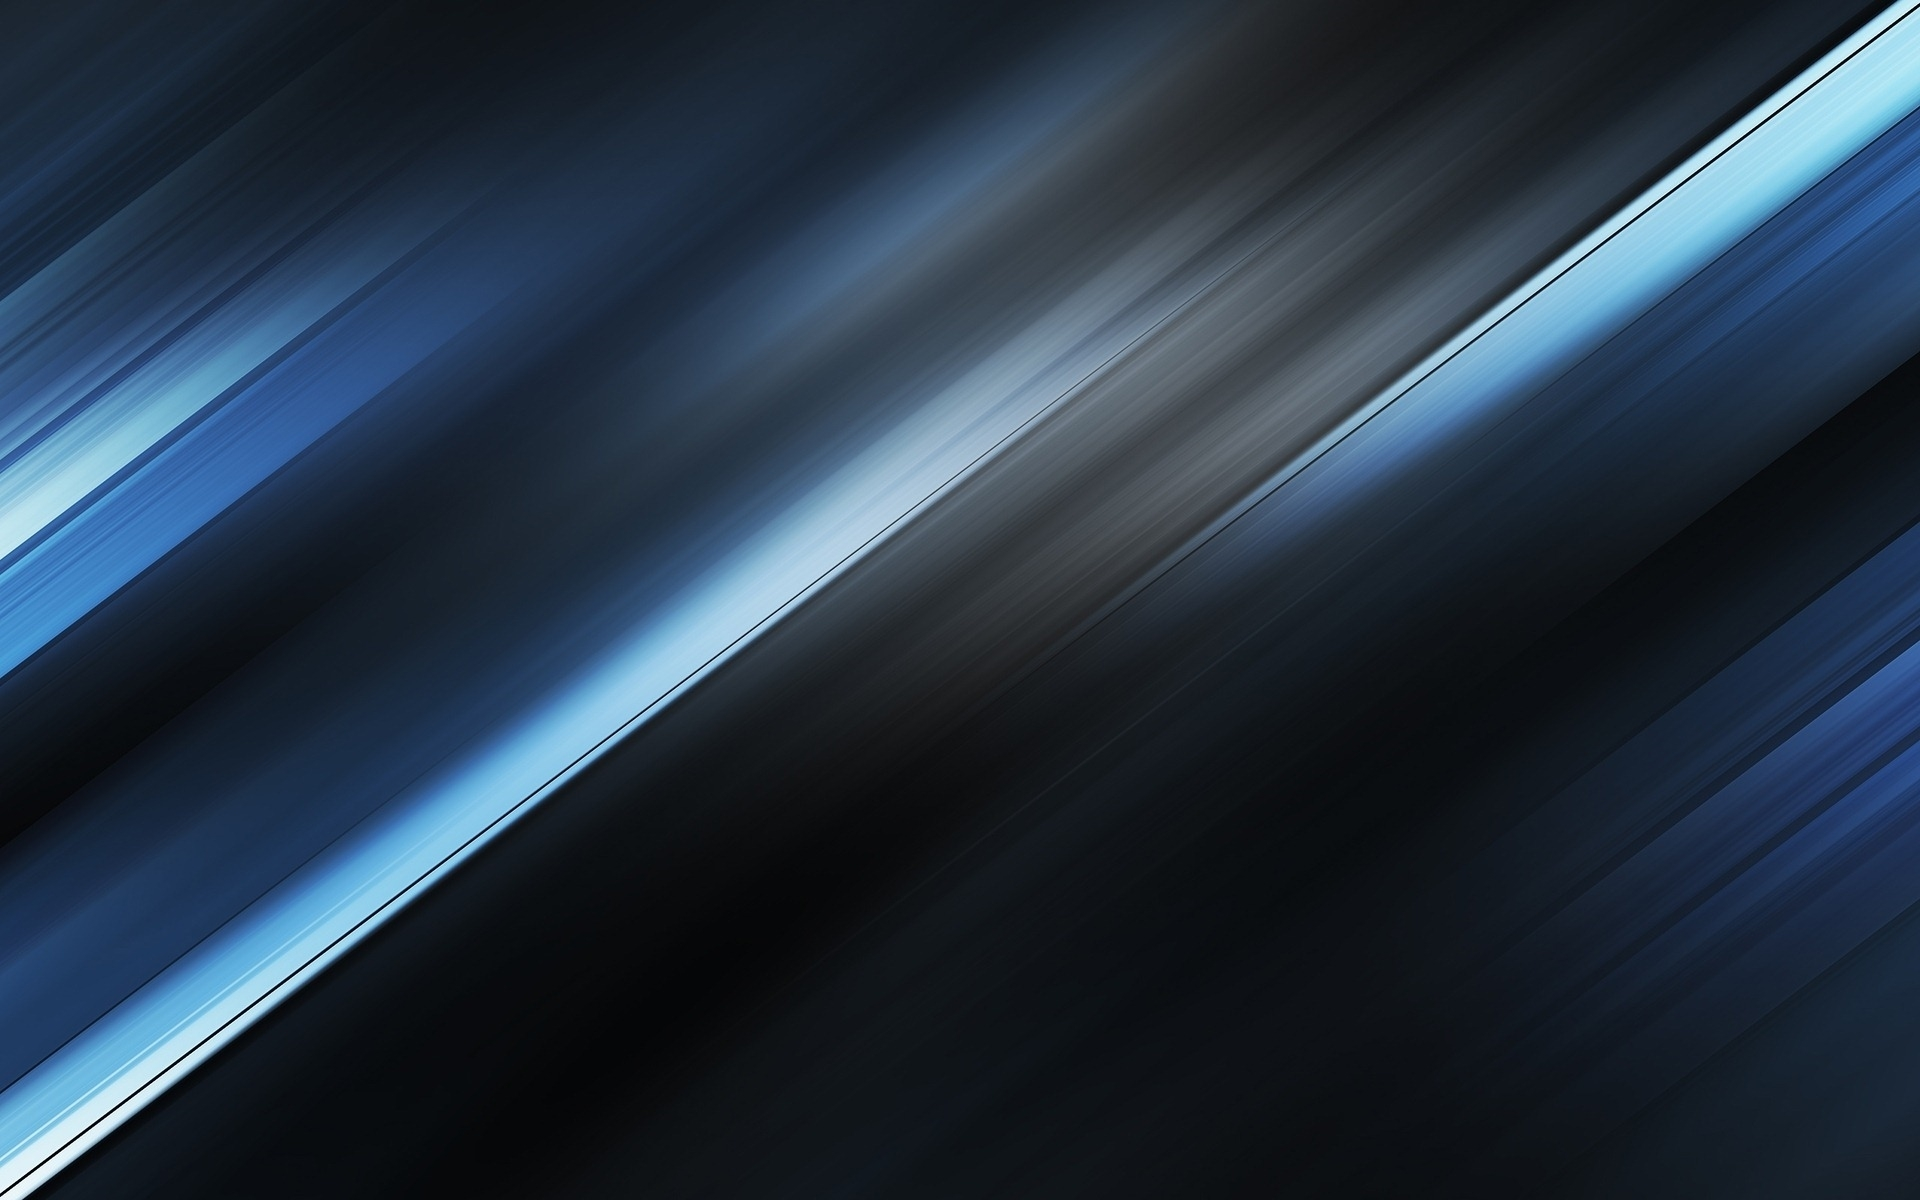 3d abstract hd background